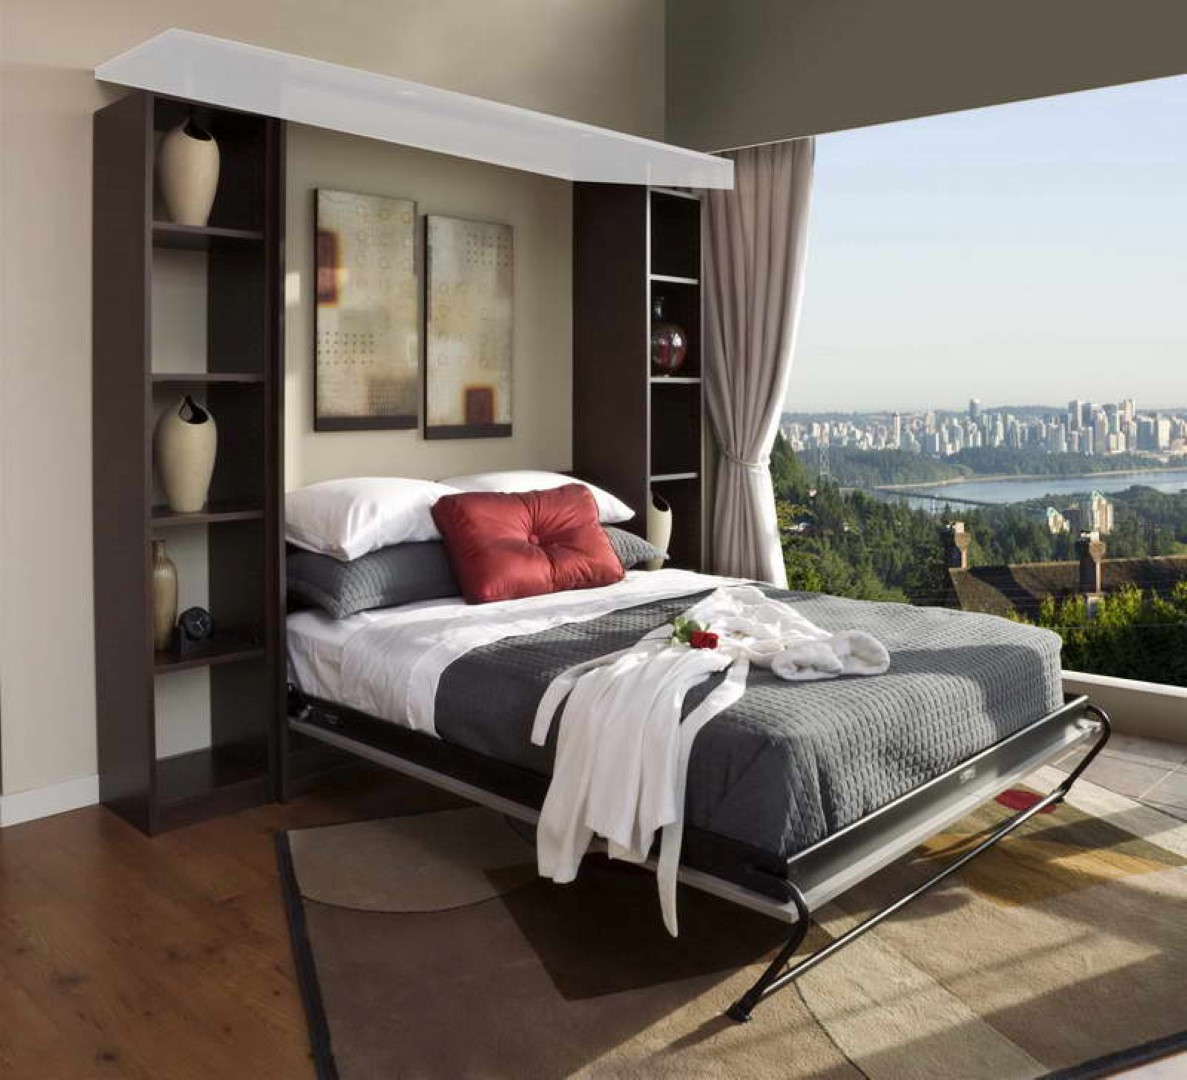 Comfortable bedroom design with murphy bed kit lowes for Comfortable bedroom ideas